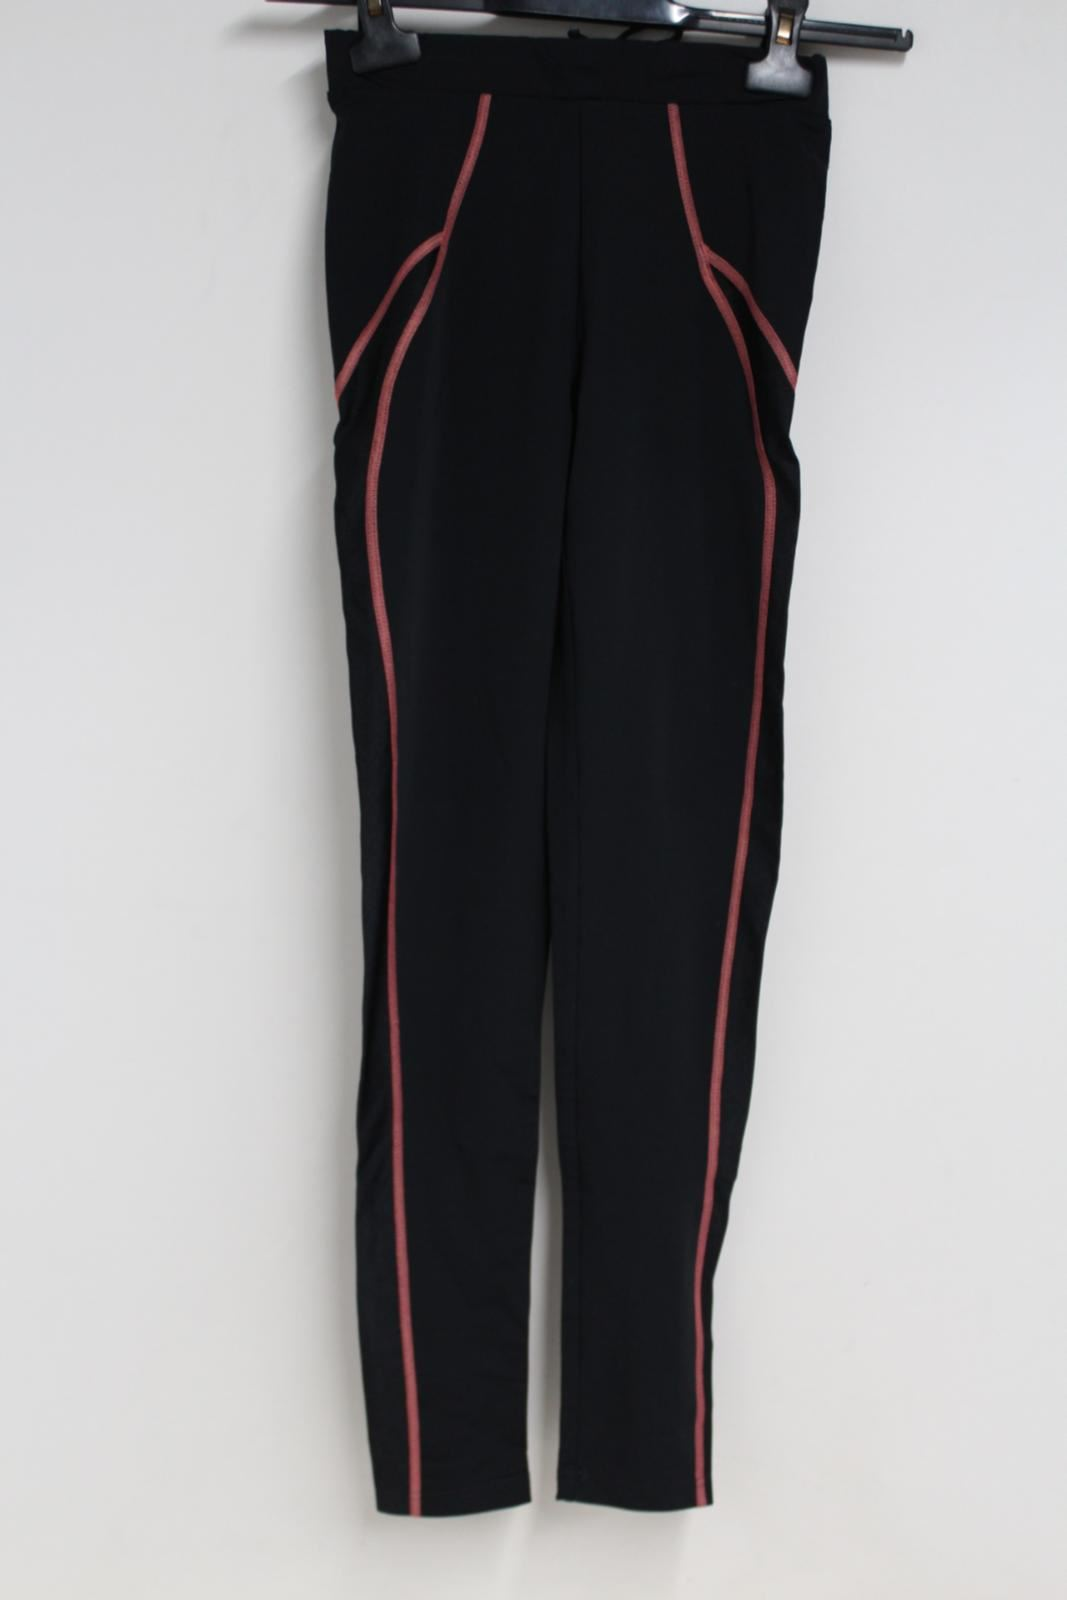 Sweaty-Betty-Senoras-Pantalones-Negros-Activewear-Ajustados-Leggings-Talla-XS-W24-L28